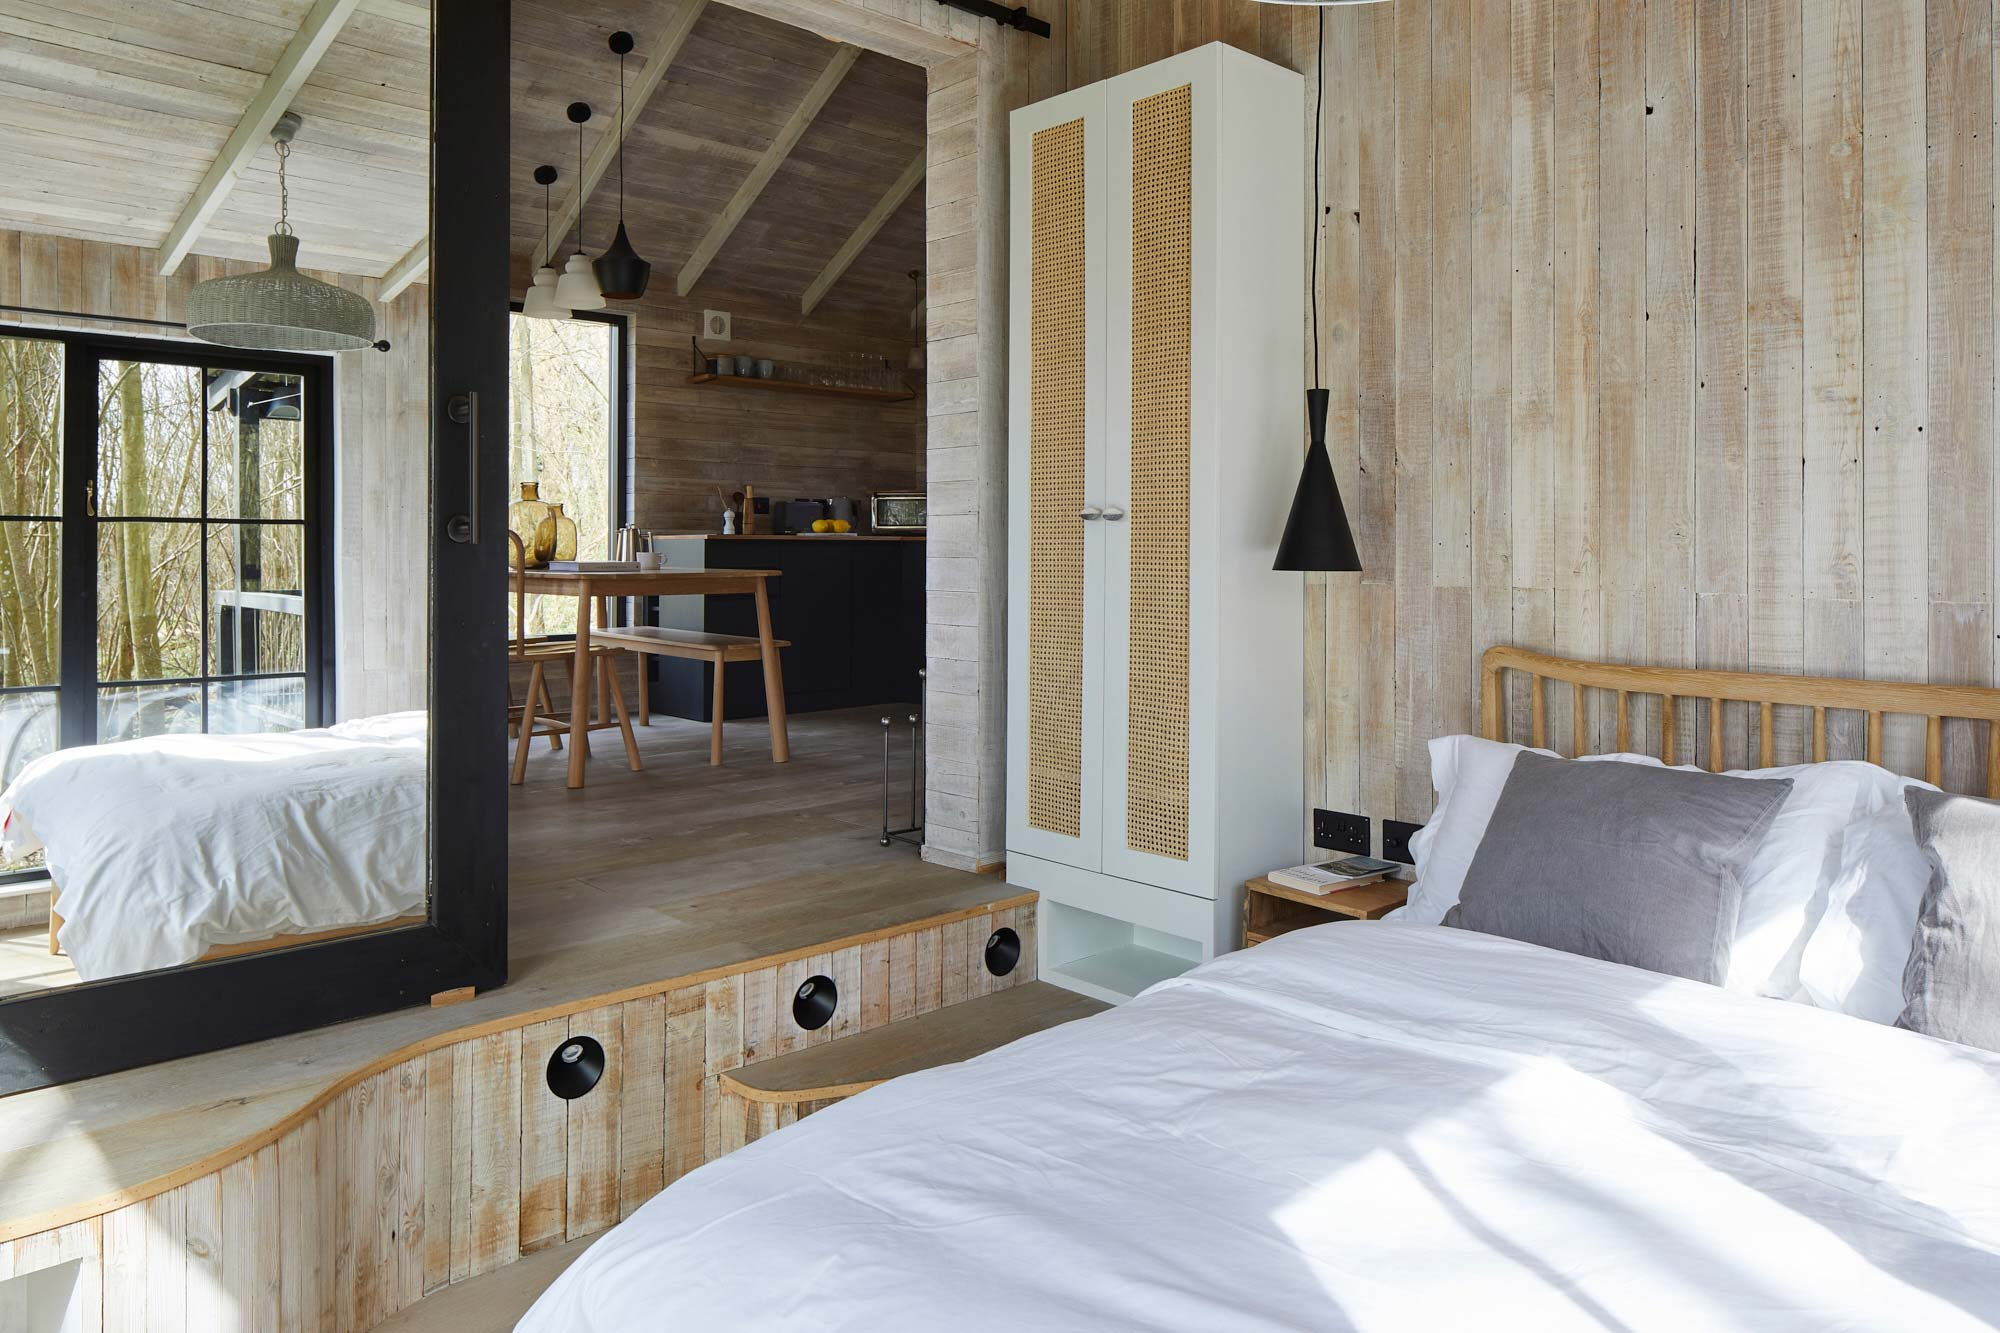 Bedroom cladded in reclaimed timber